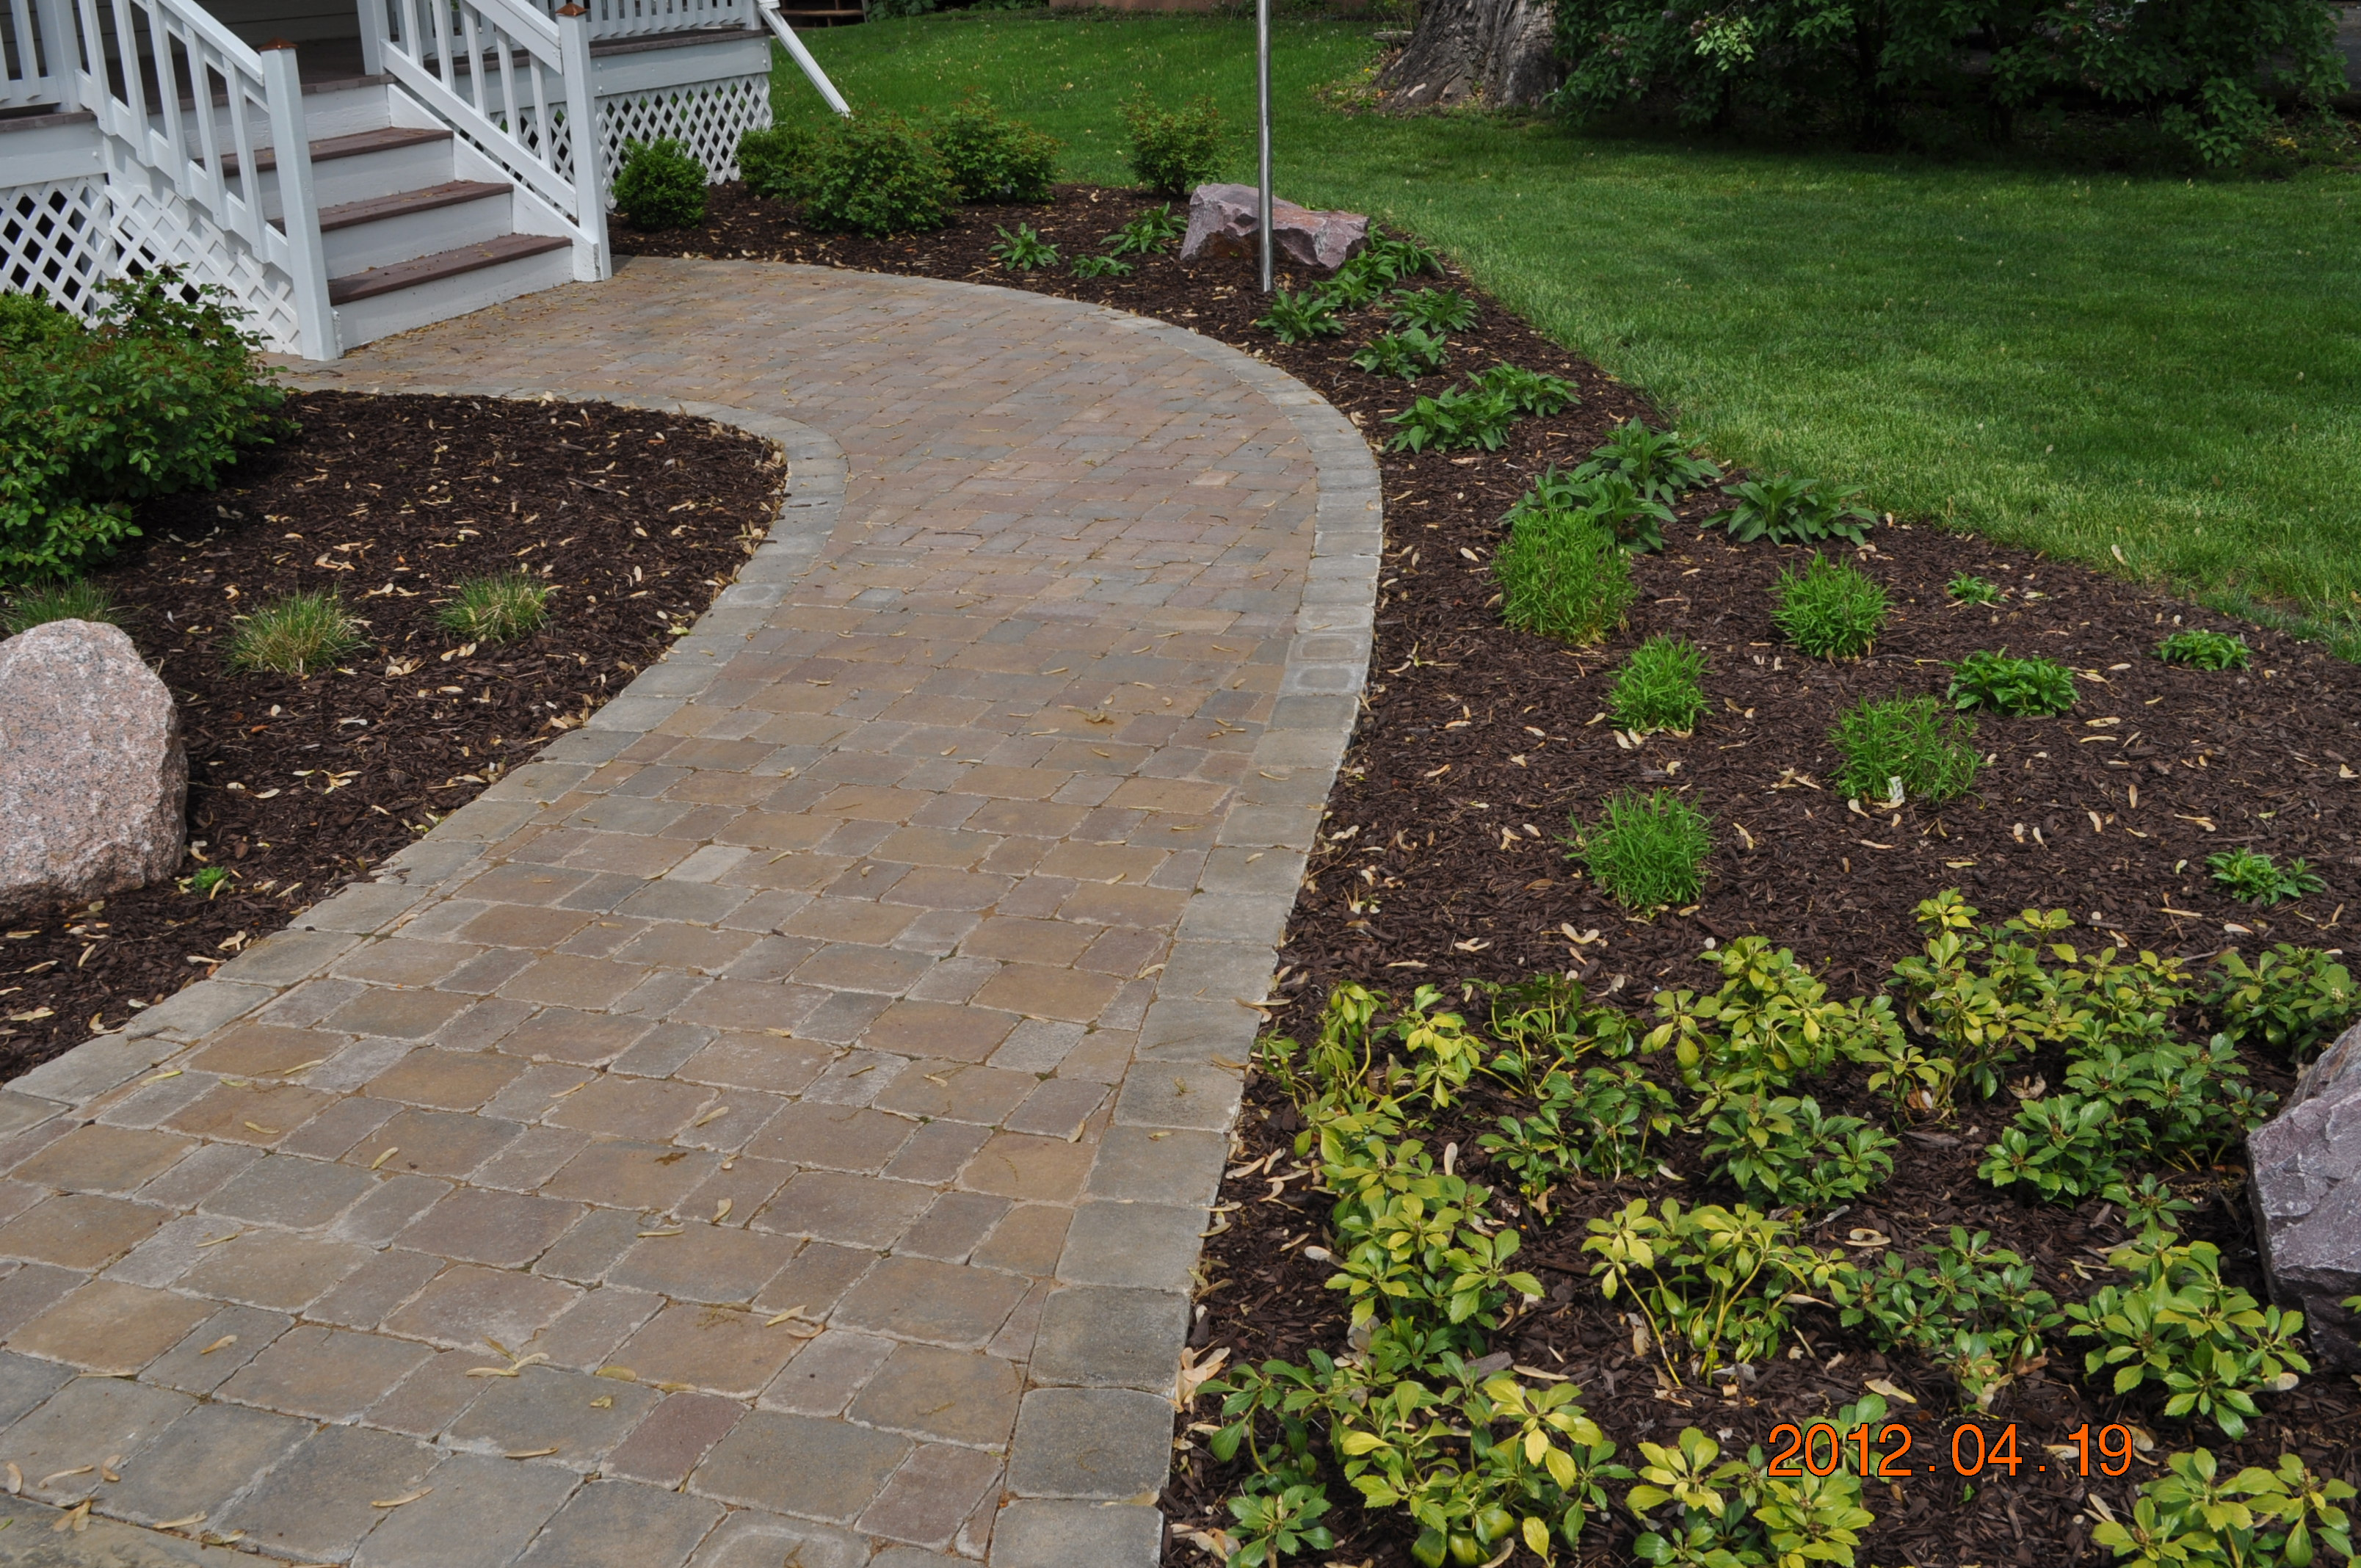 Living spaces coupon discount happy memorial day 2014 - Stamped concrete walkway ideas ...